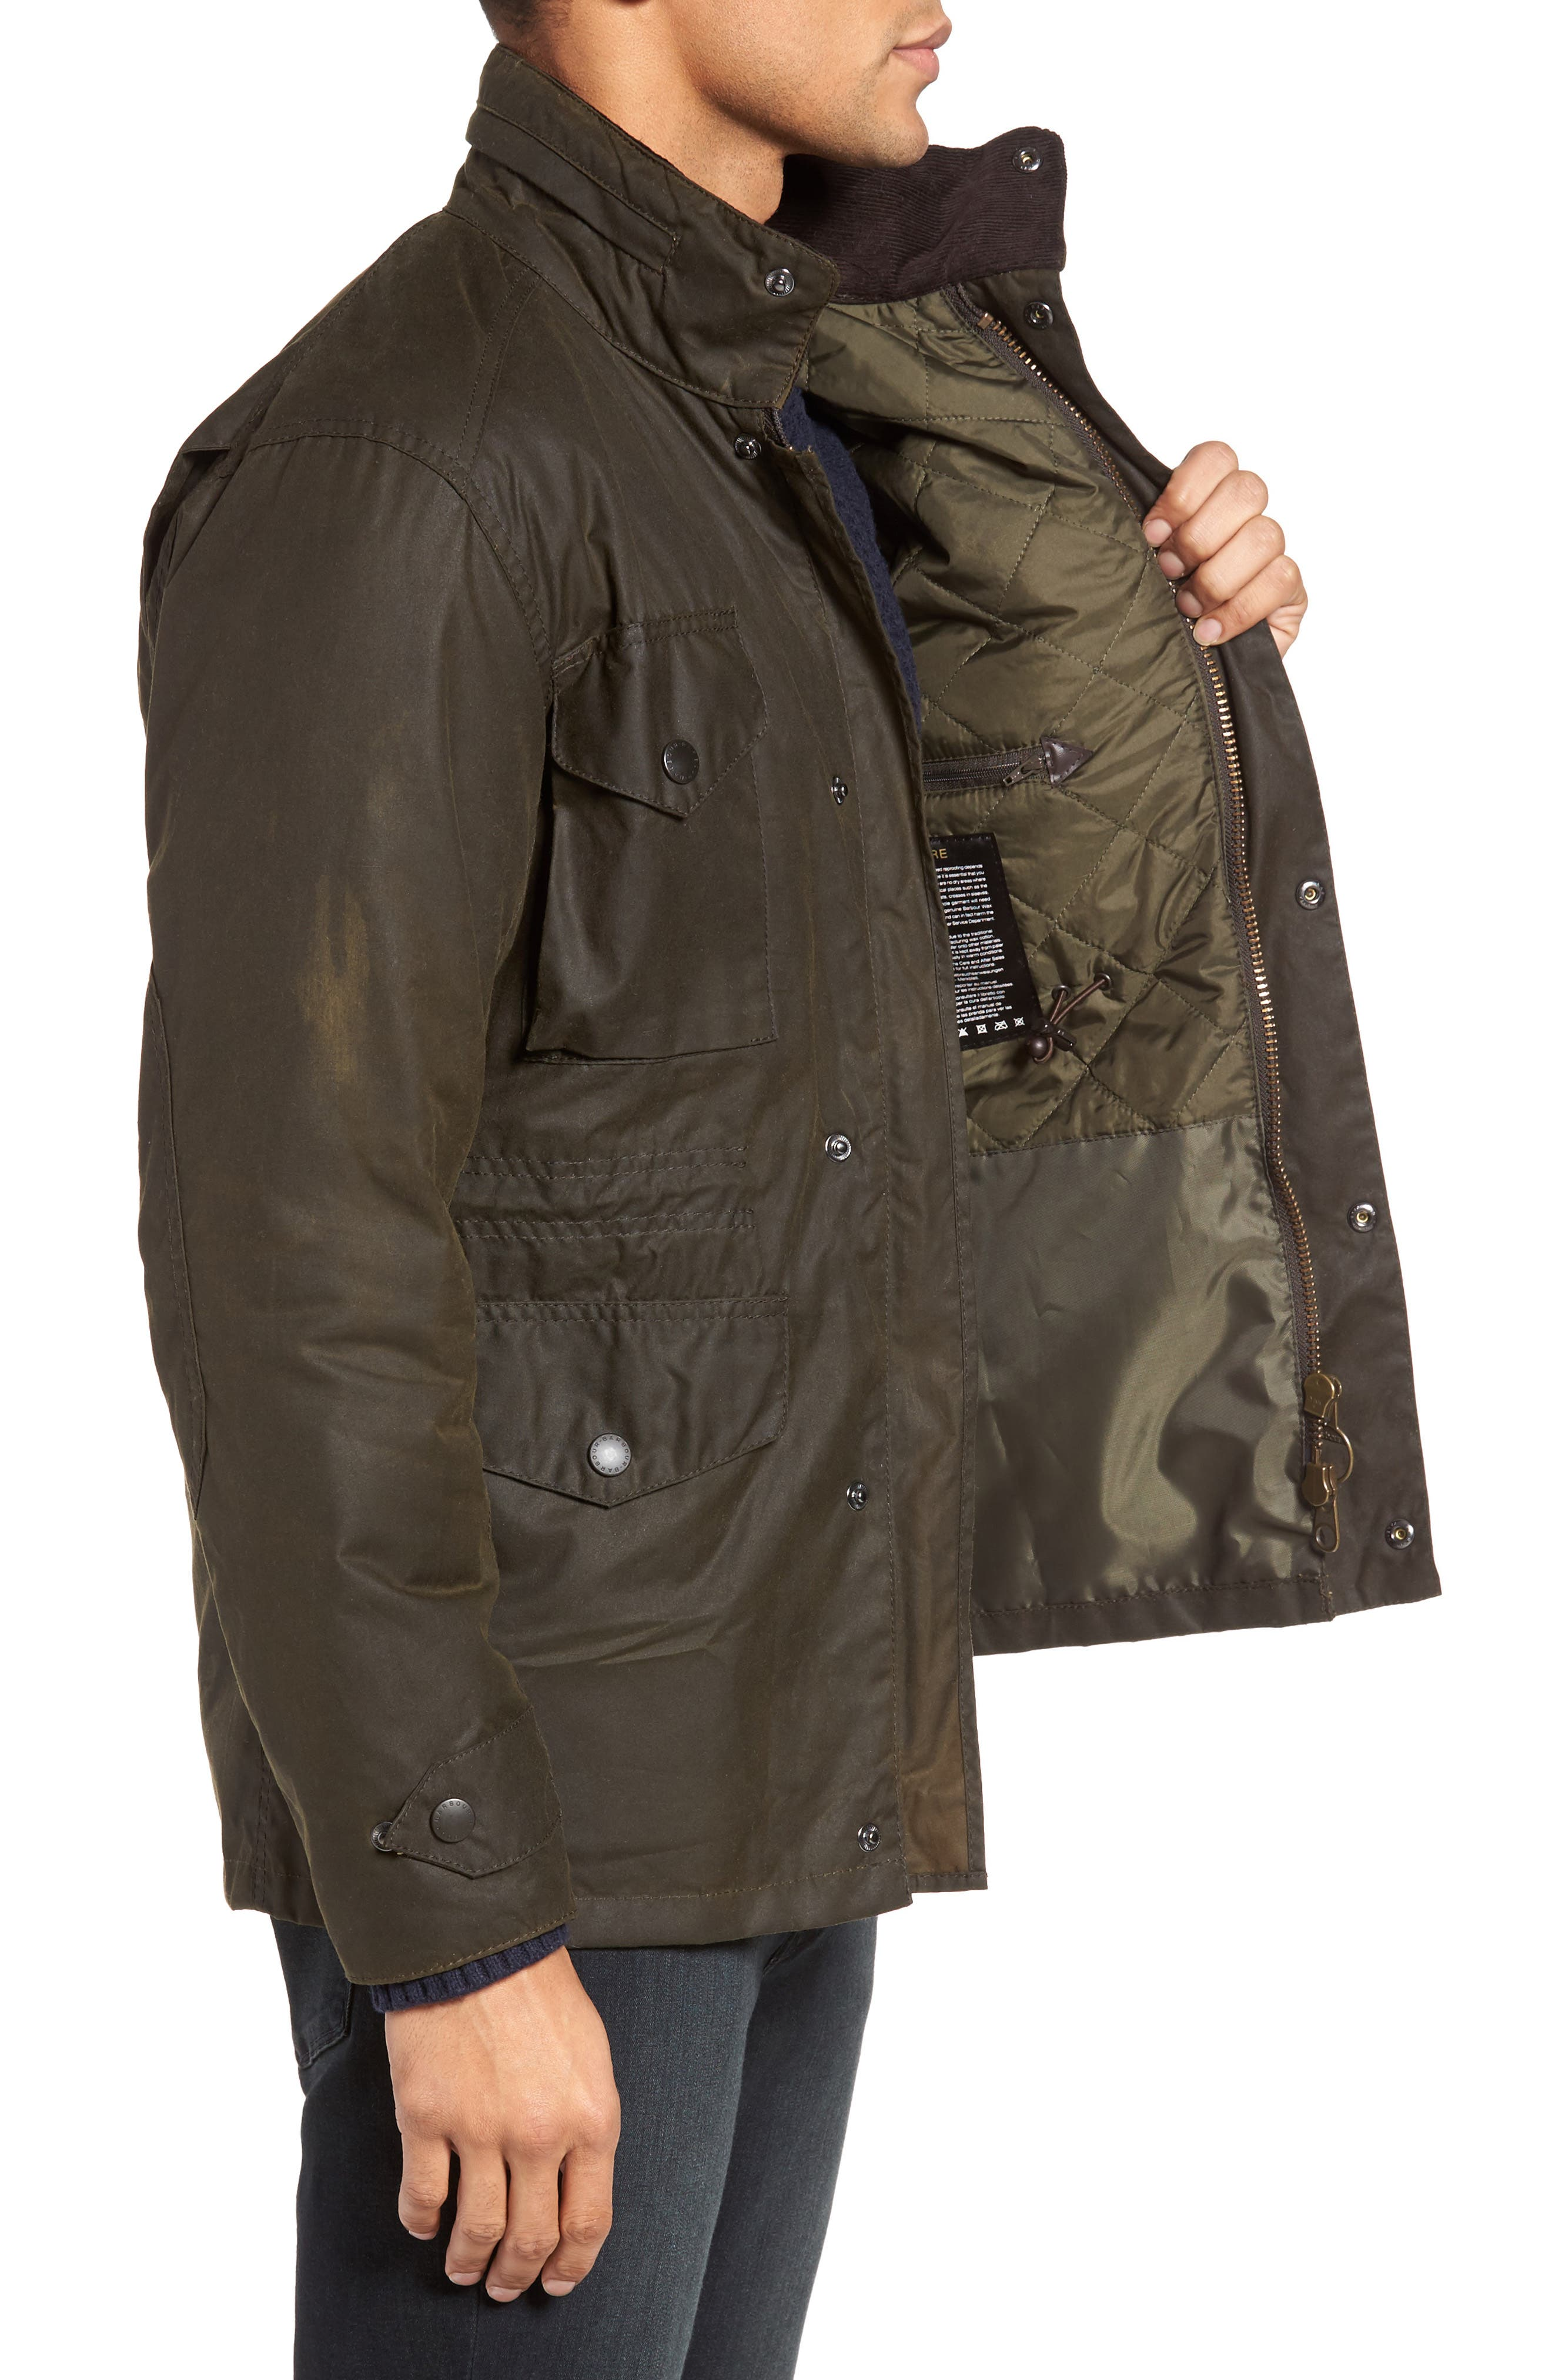 BARBOUR, Sapper Regular Fit Weatherproof Waxed Cotton Jacket, Alternate thumbnail 4, color, OLIVE